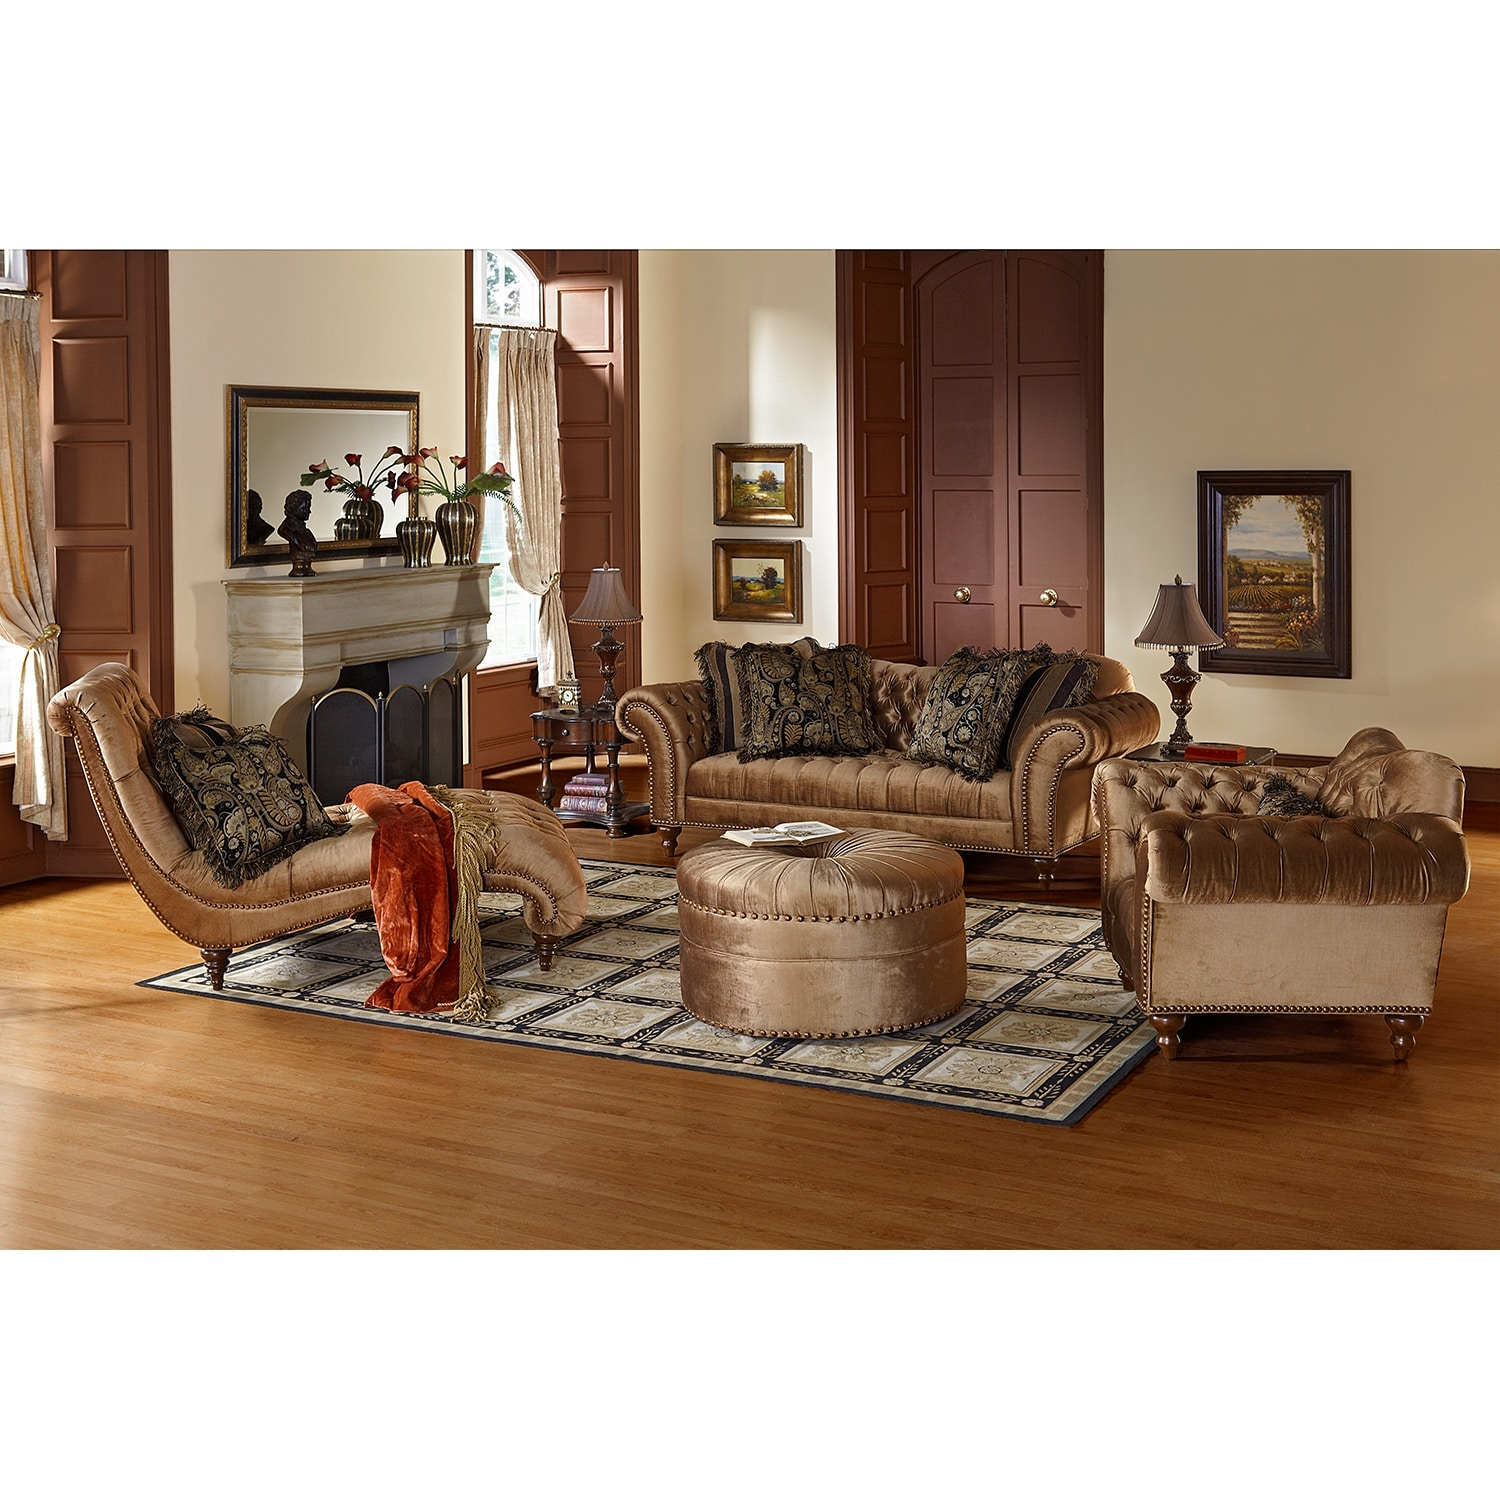 Brittney Upholstery 2 Pc Living Room W Chaise American Signature Furniture